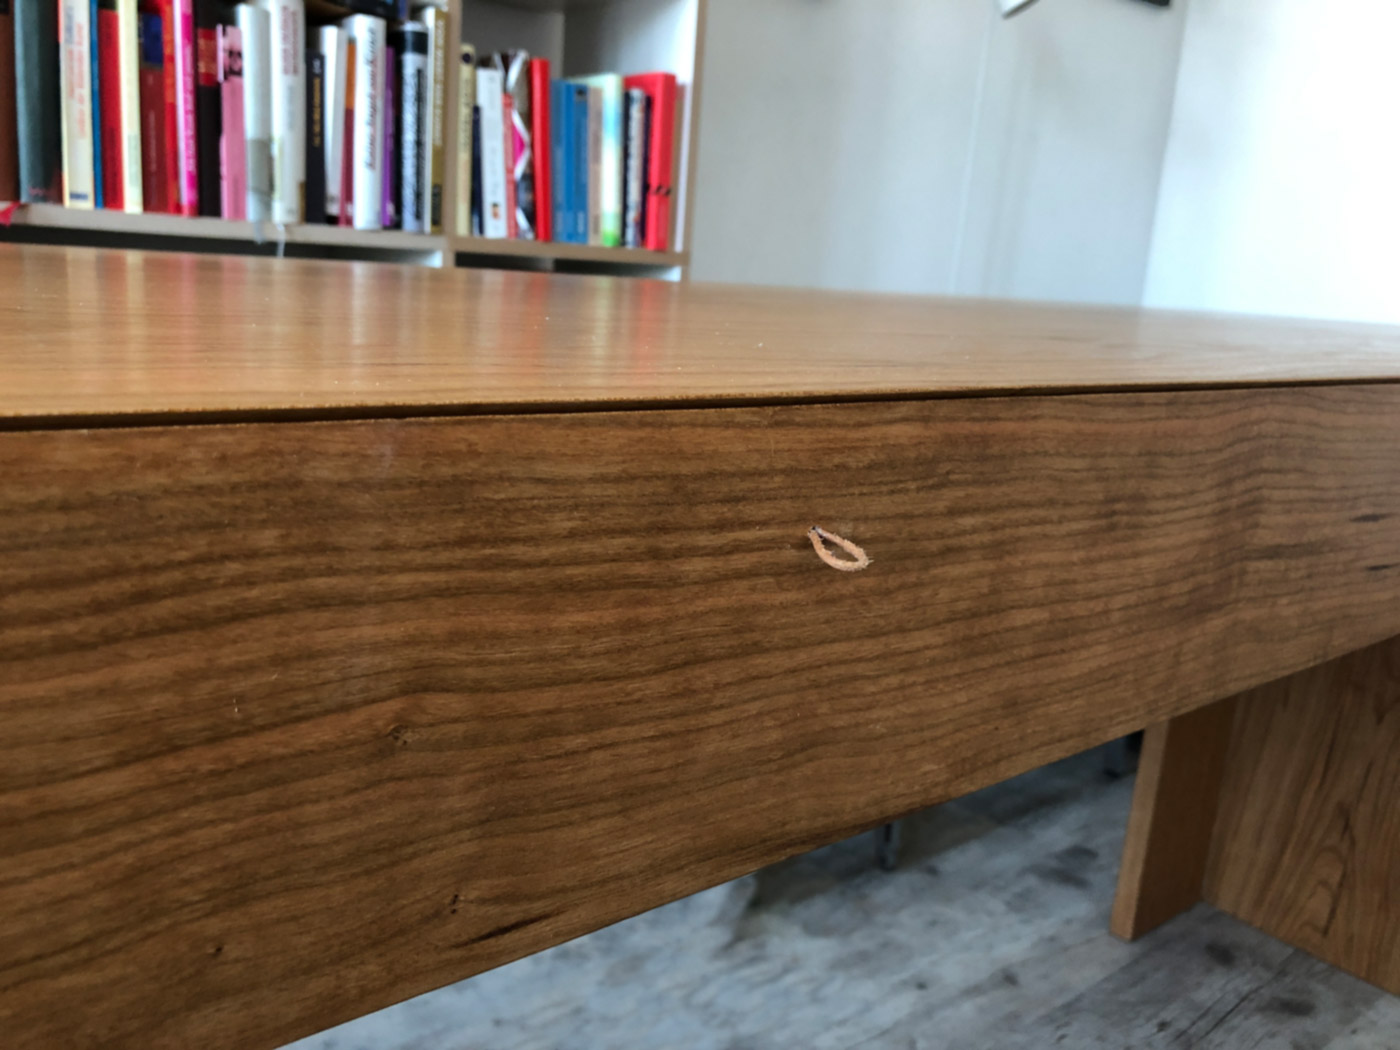 DESKTOP @ 2018, solid American walnut, made of one big tree, handles of oiled leather straps, 300 x 65 x 79 cm